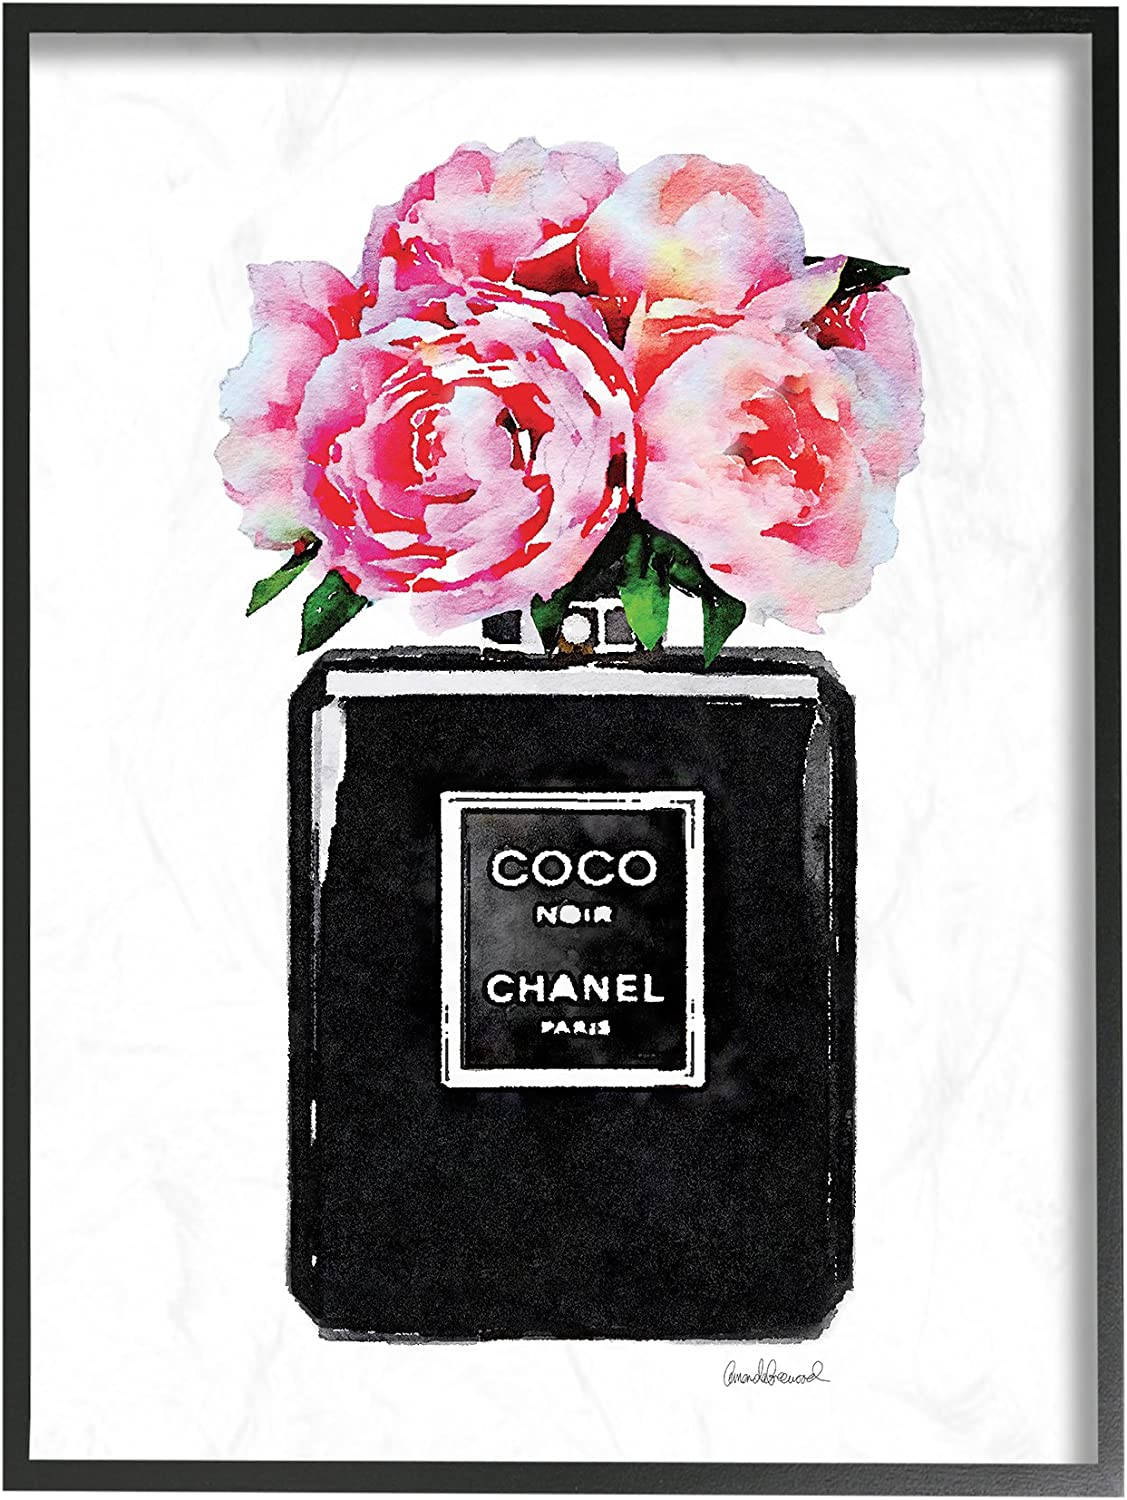 Stupell Industries Glam Perfume Bottle Flower Black Peony Pink Framed Wall Art, 16 x 20